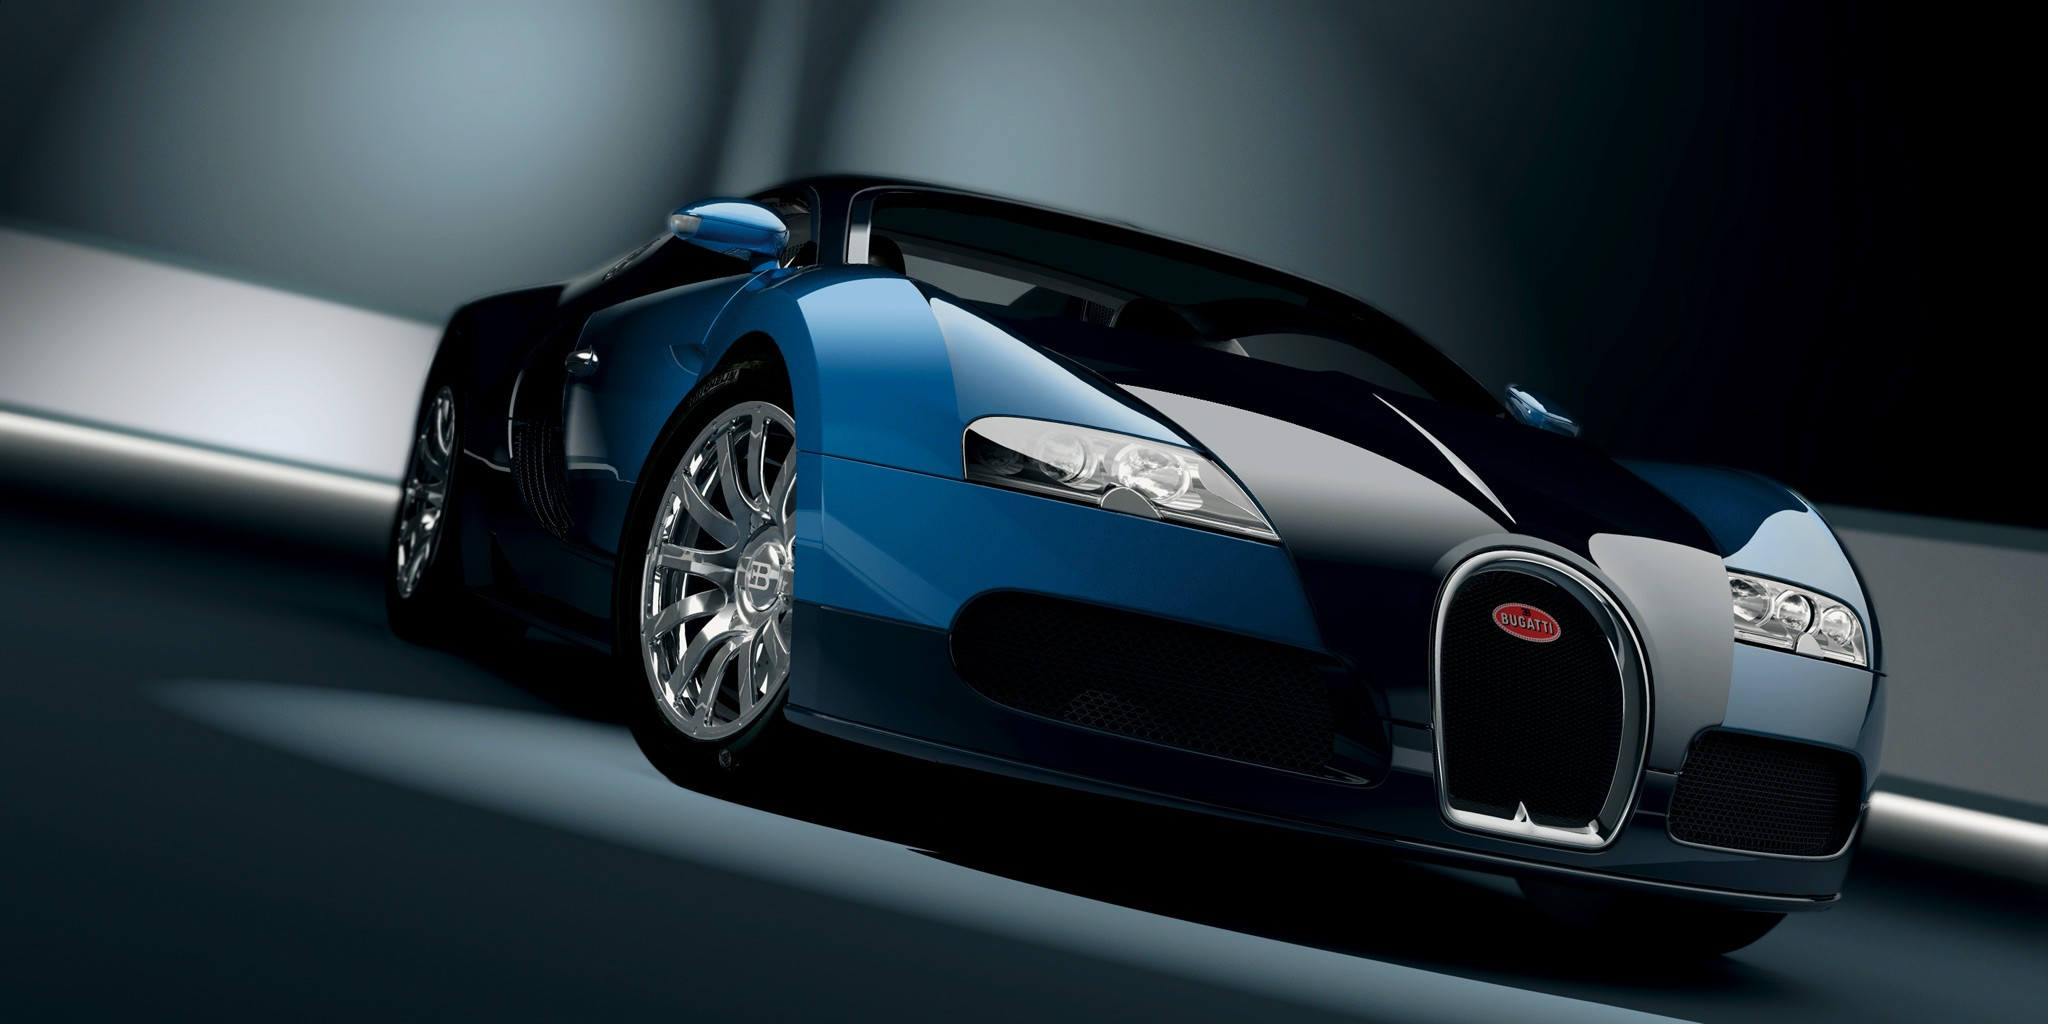 Bugatti Veyron Wallpaper And Background Image